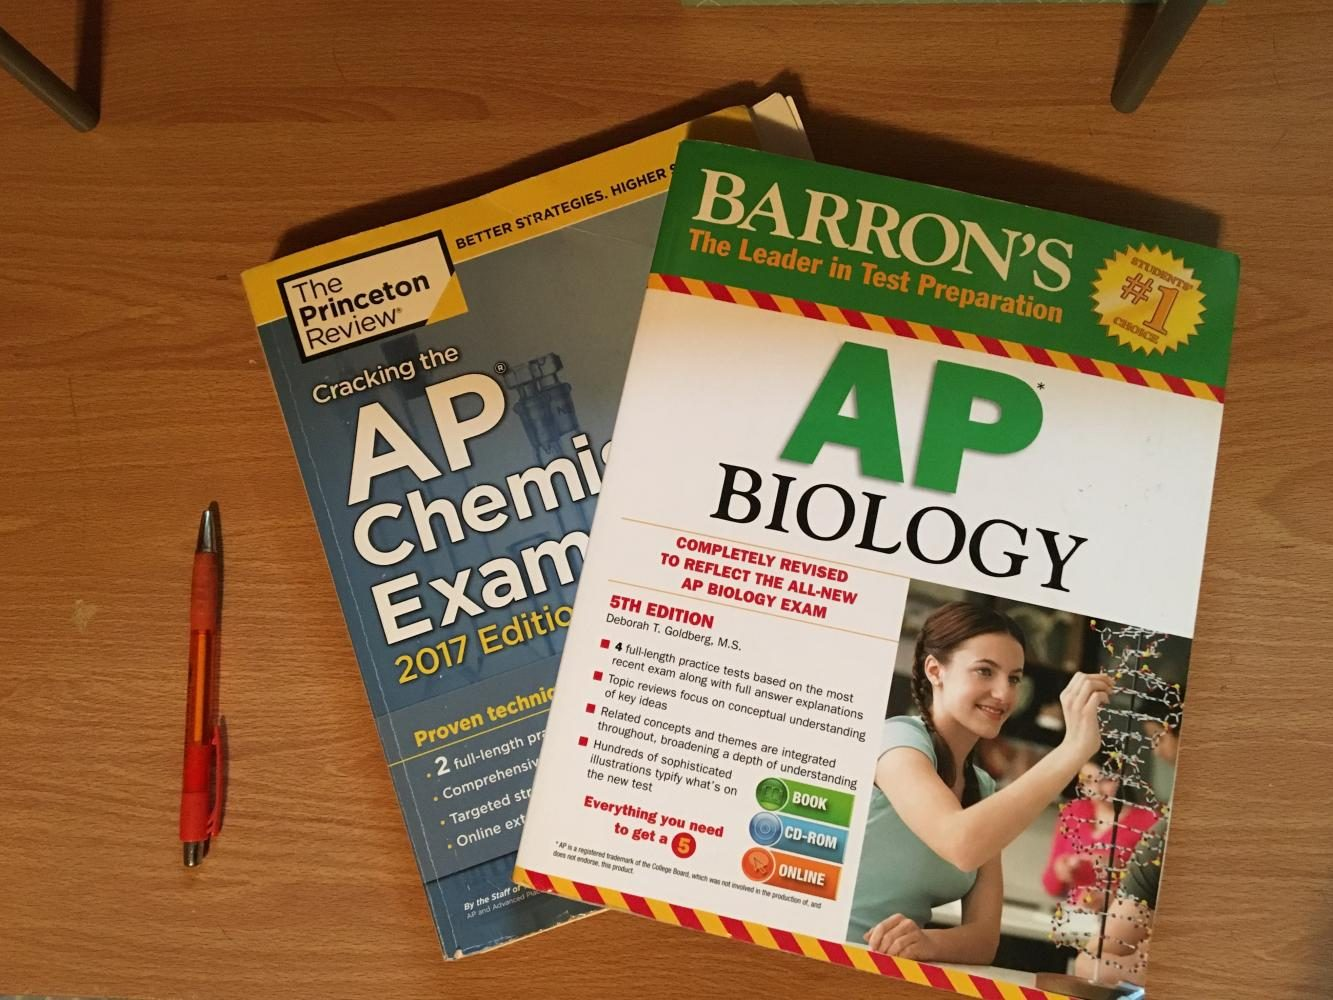 AP+science+exams+align+closely+with+SPA%27s+honors+courses%2C+so+the+extra+preparation+time+is+manageable.